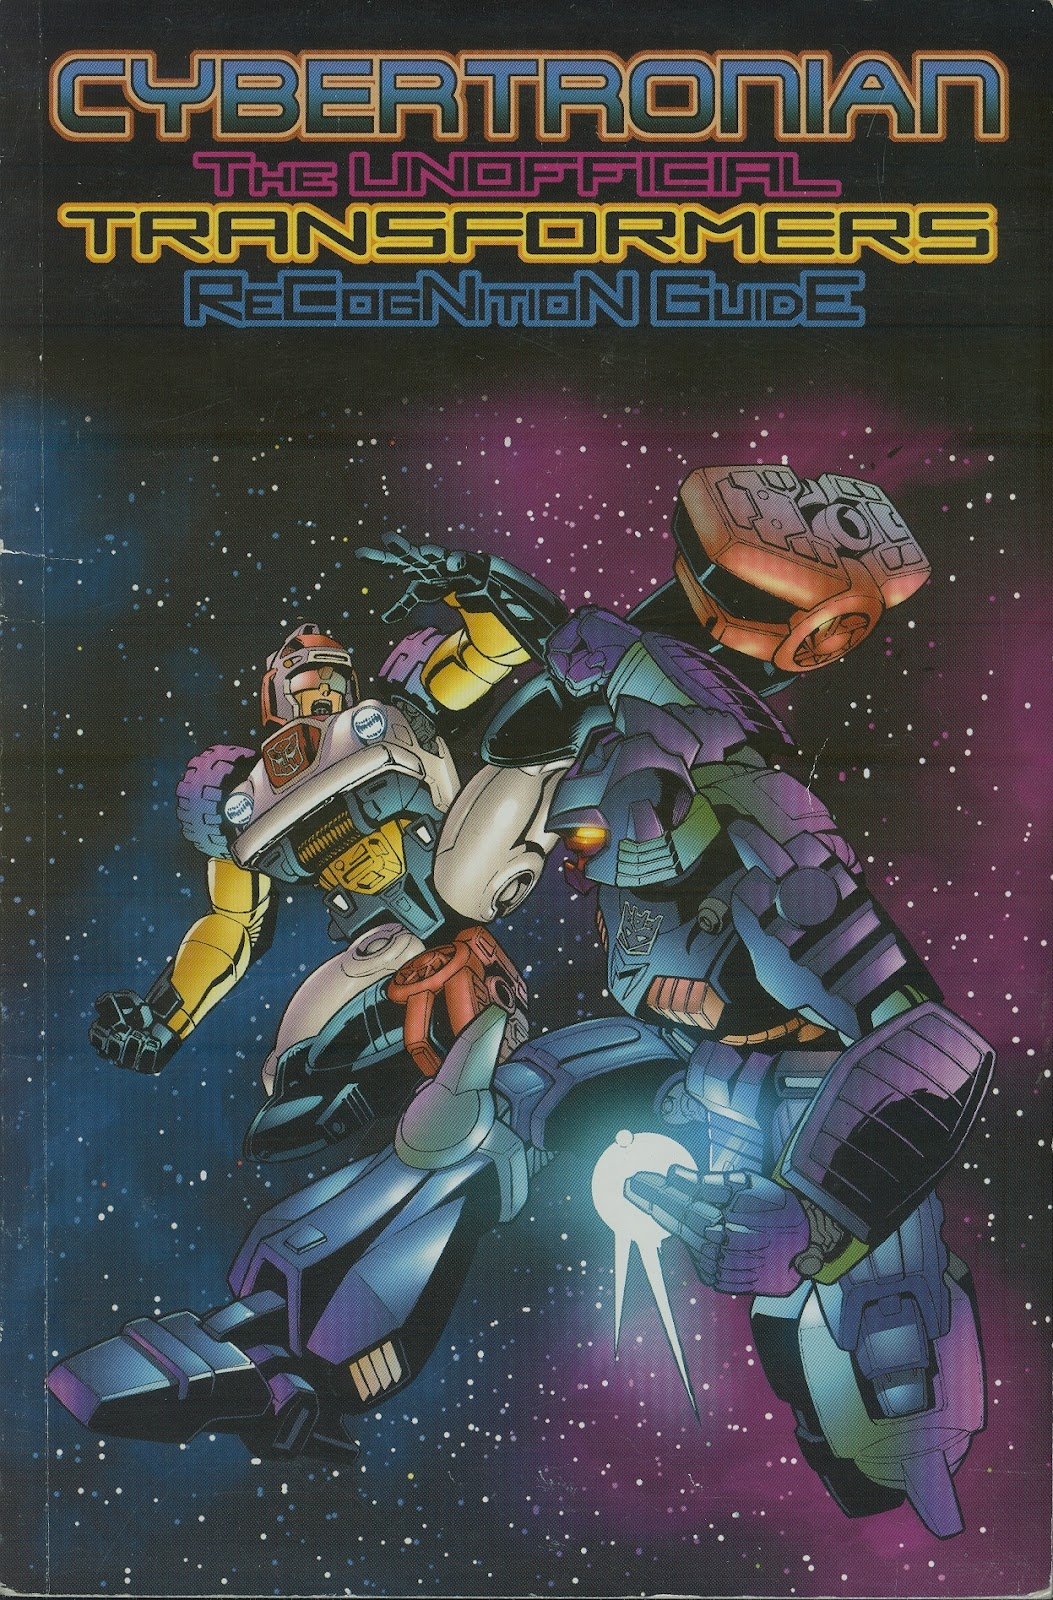 Cybertronian: An Unofficial Transformers Recognition Guide 5 Page 1